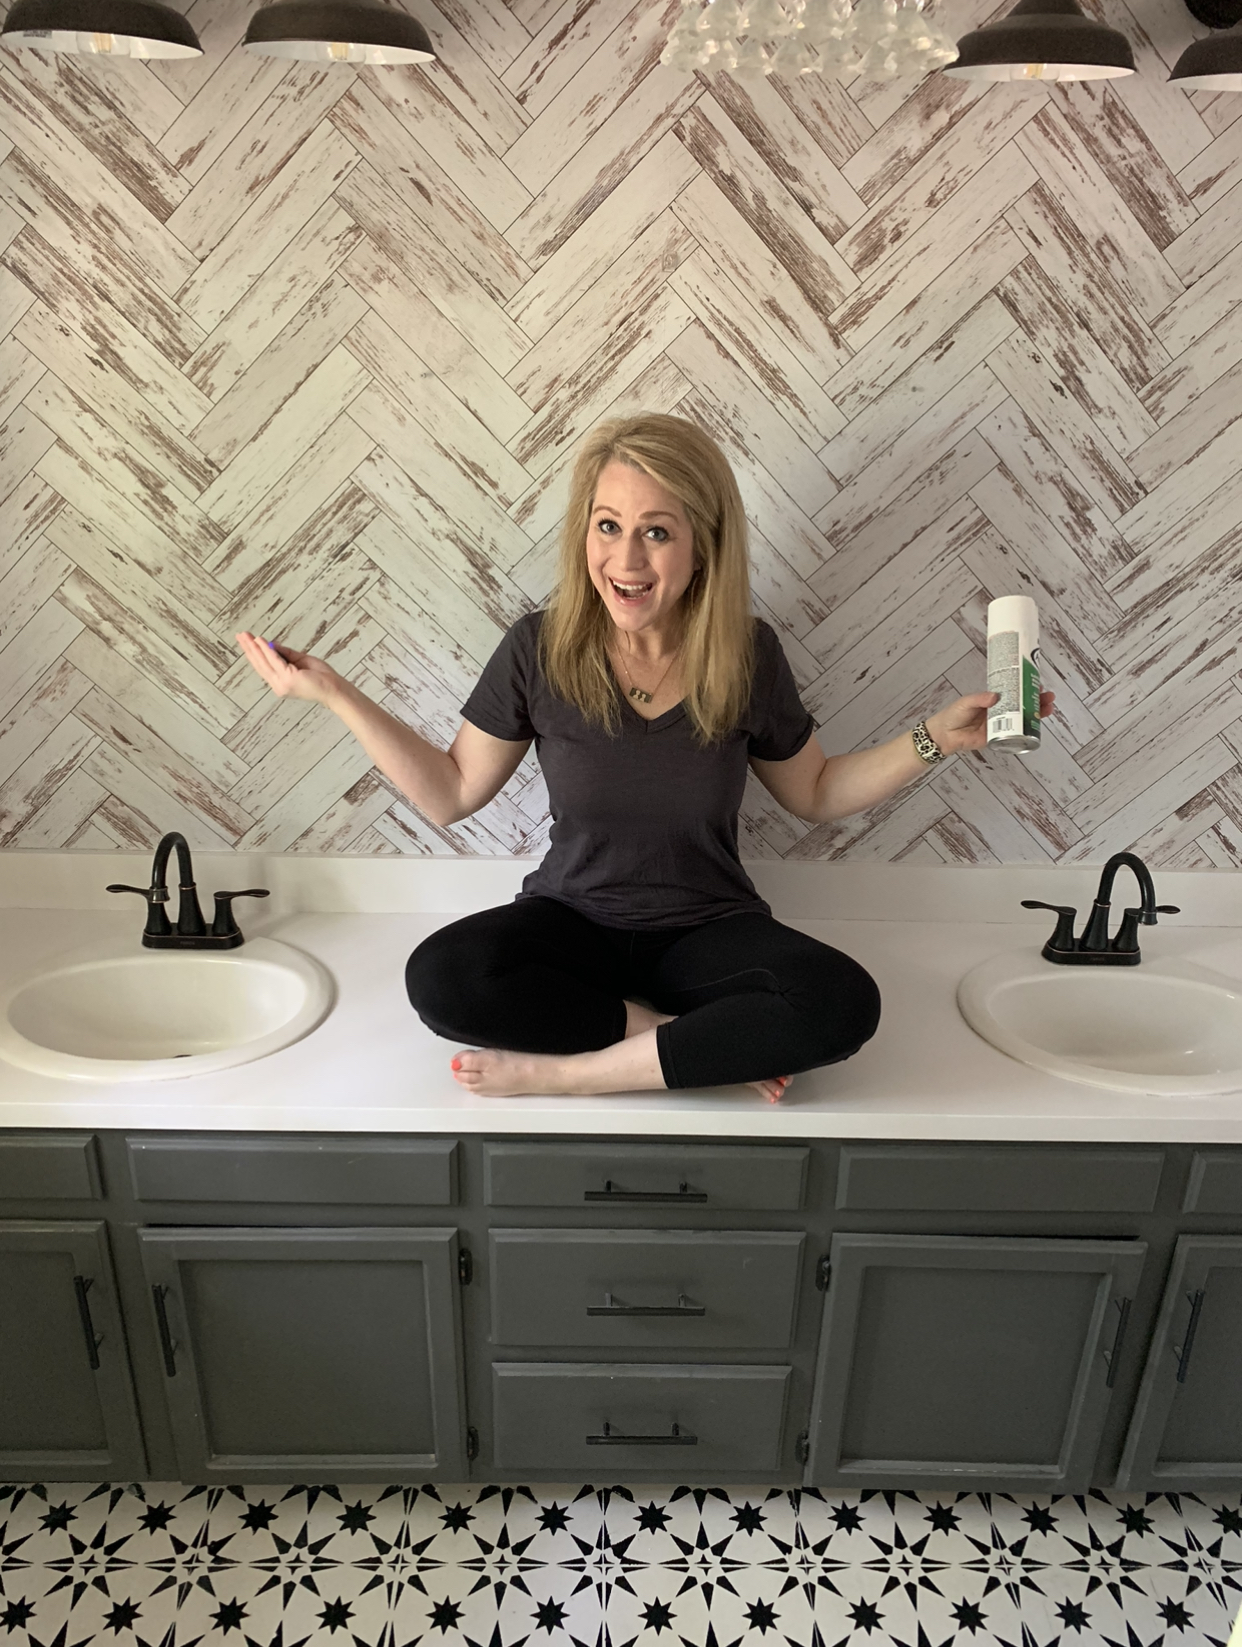 Update Your Outdated Countertops For, Bathroom Countertops Cost